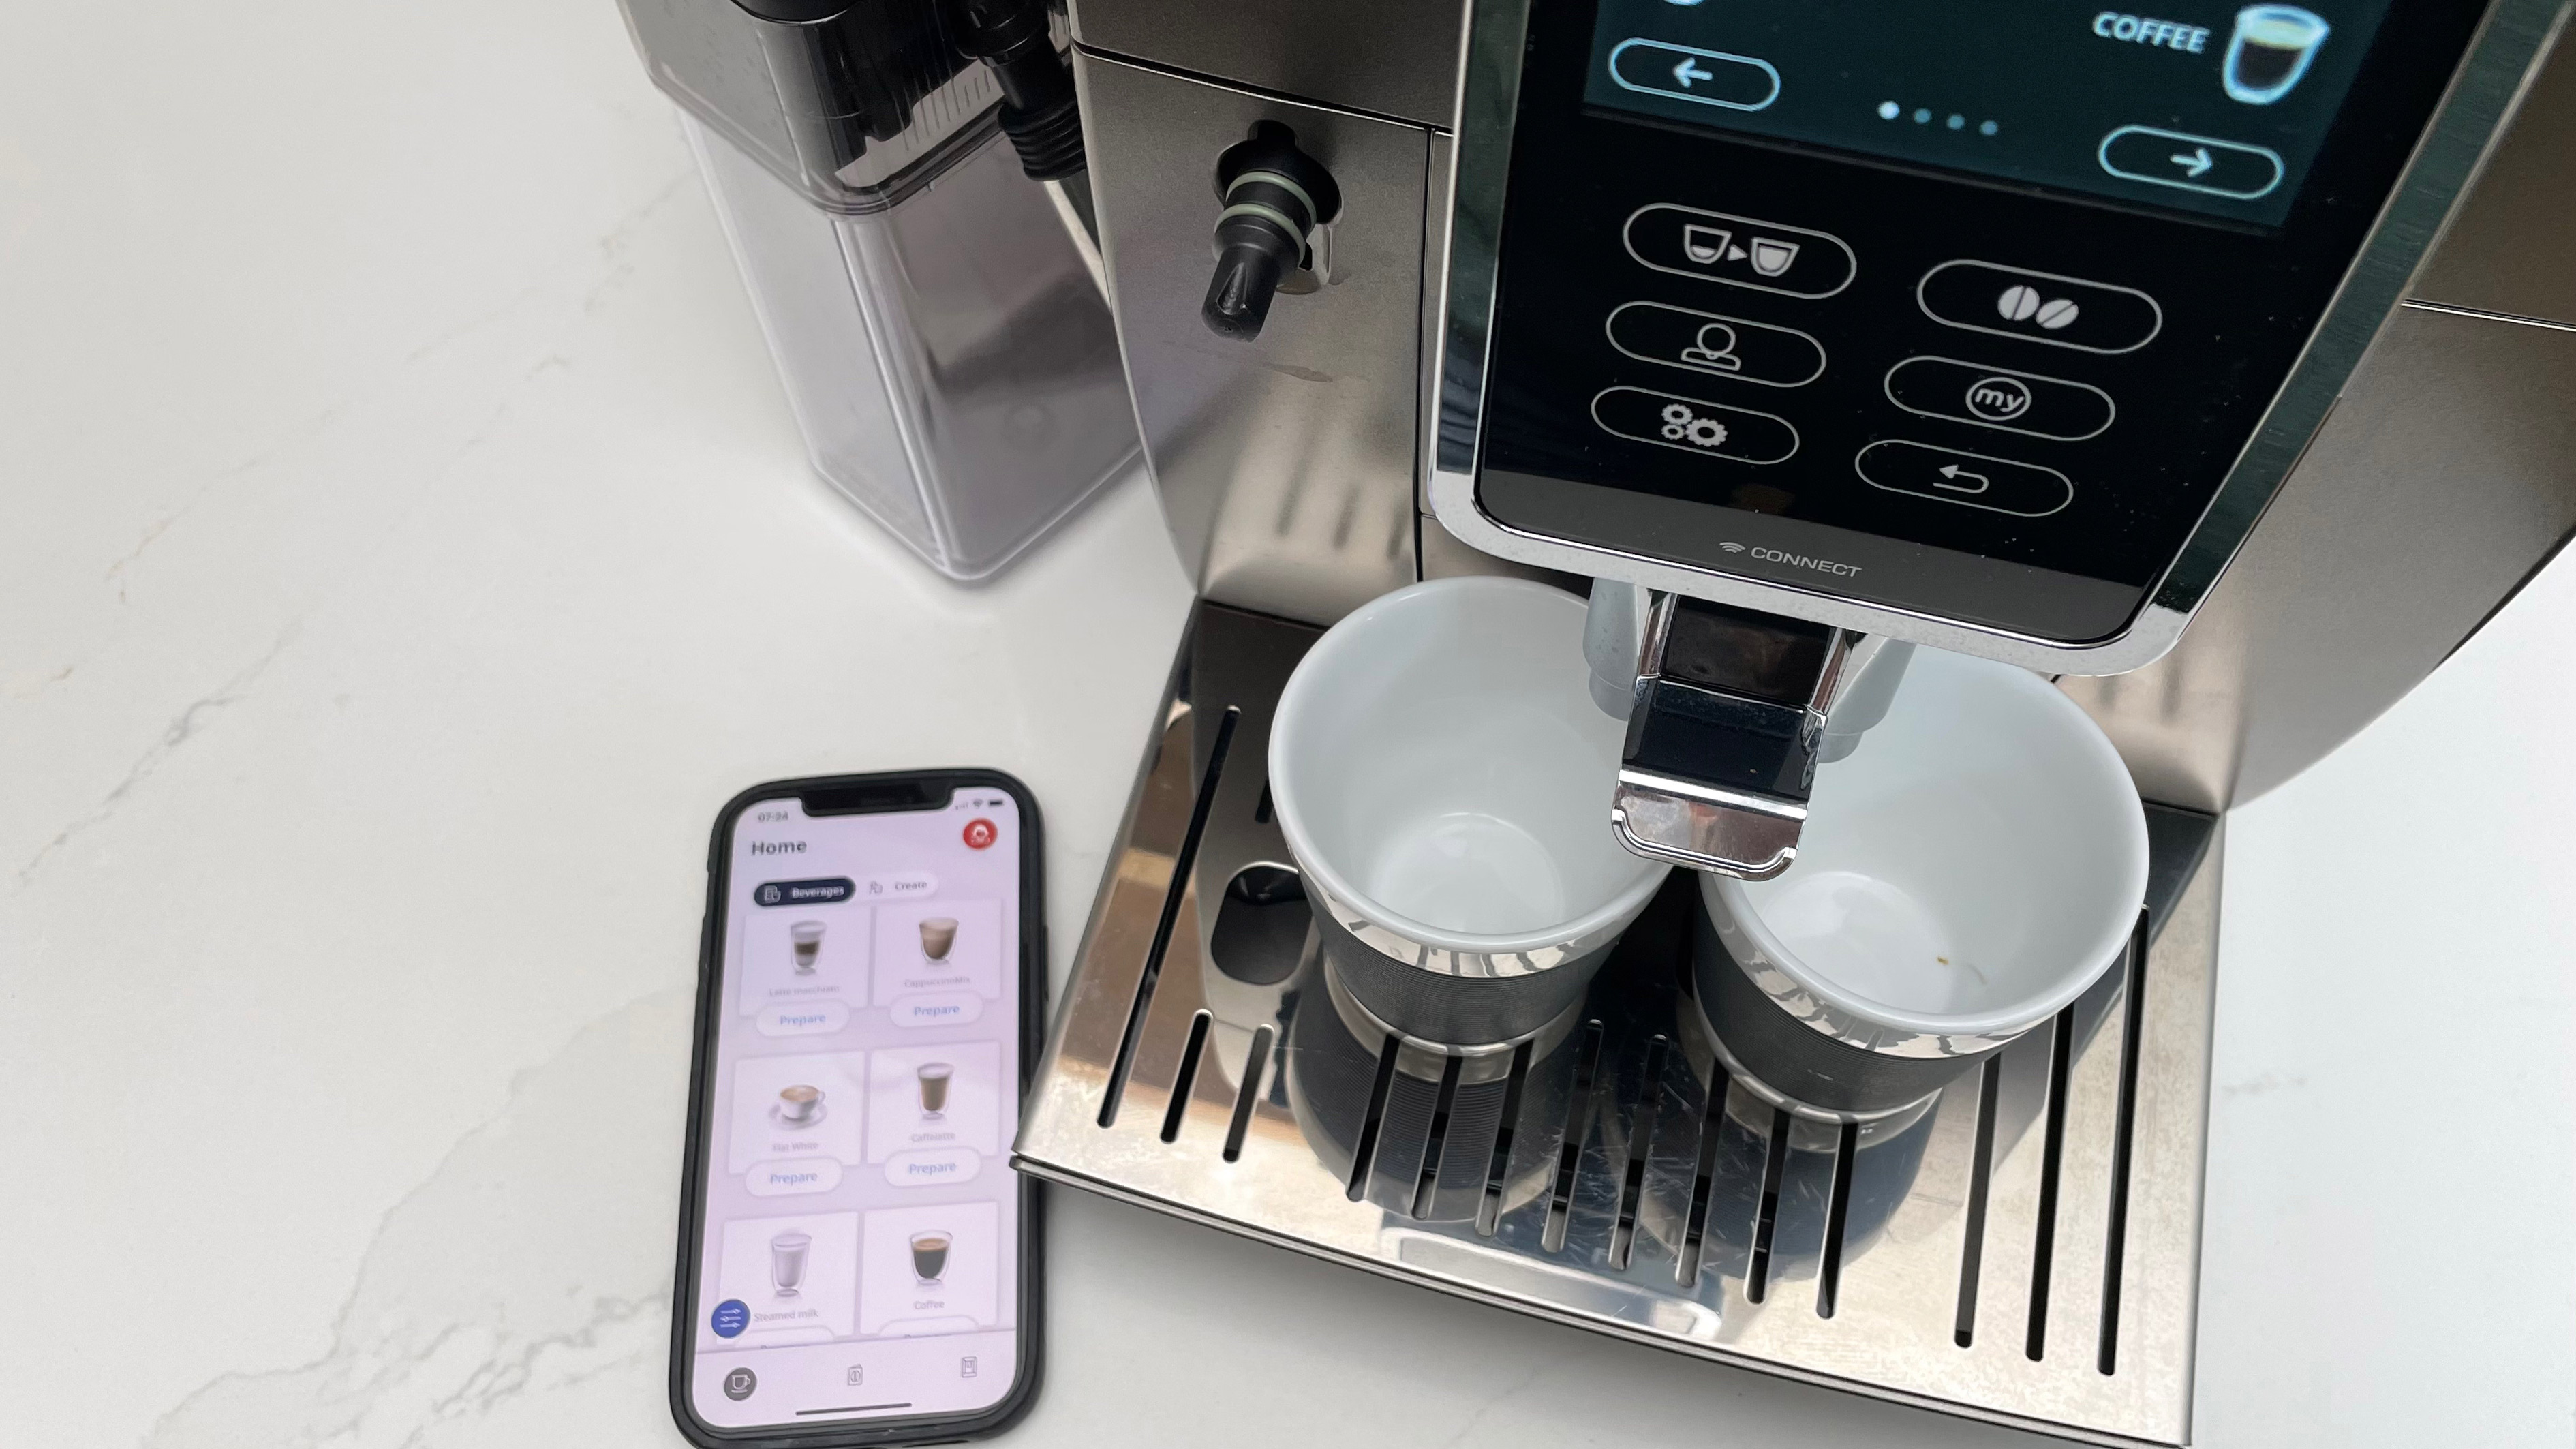 Looking down onto the De'Longhi Dinamica Plus as its ready to paur an espresso with the app onpen on a smartphone to the left-hand side